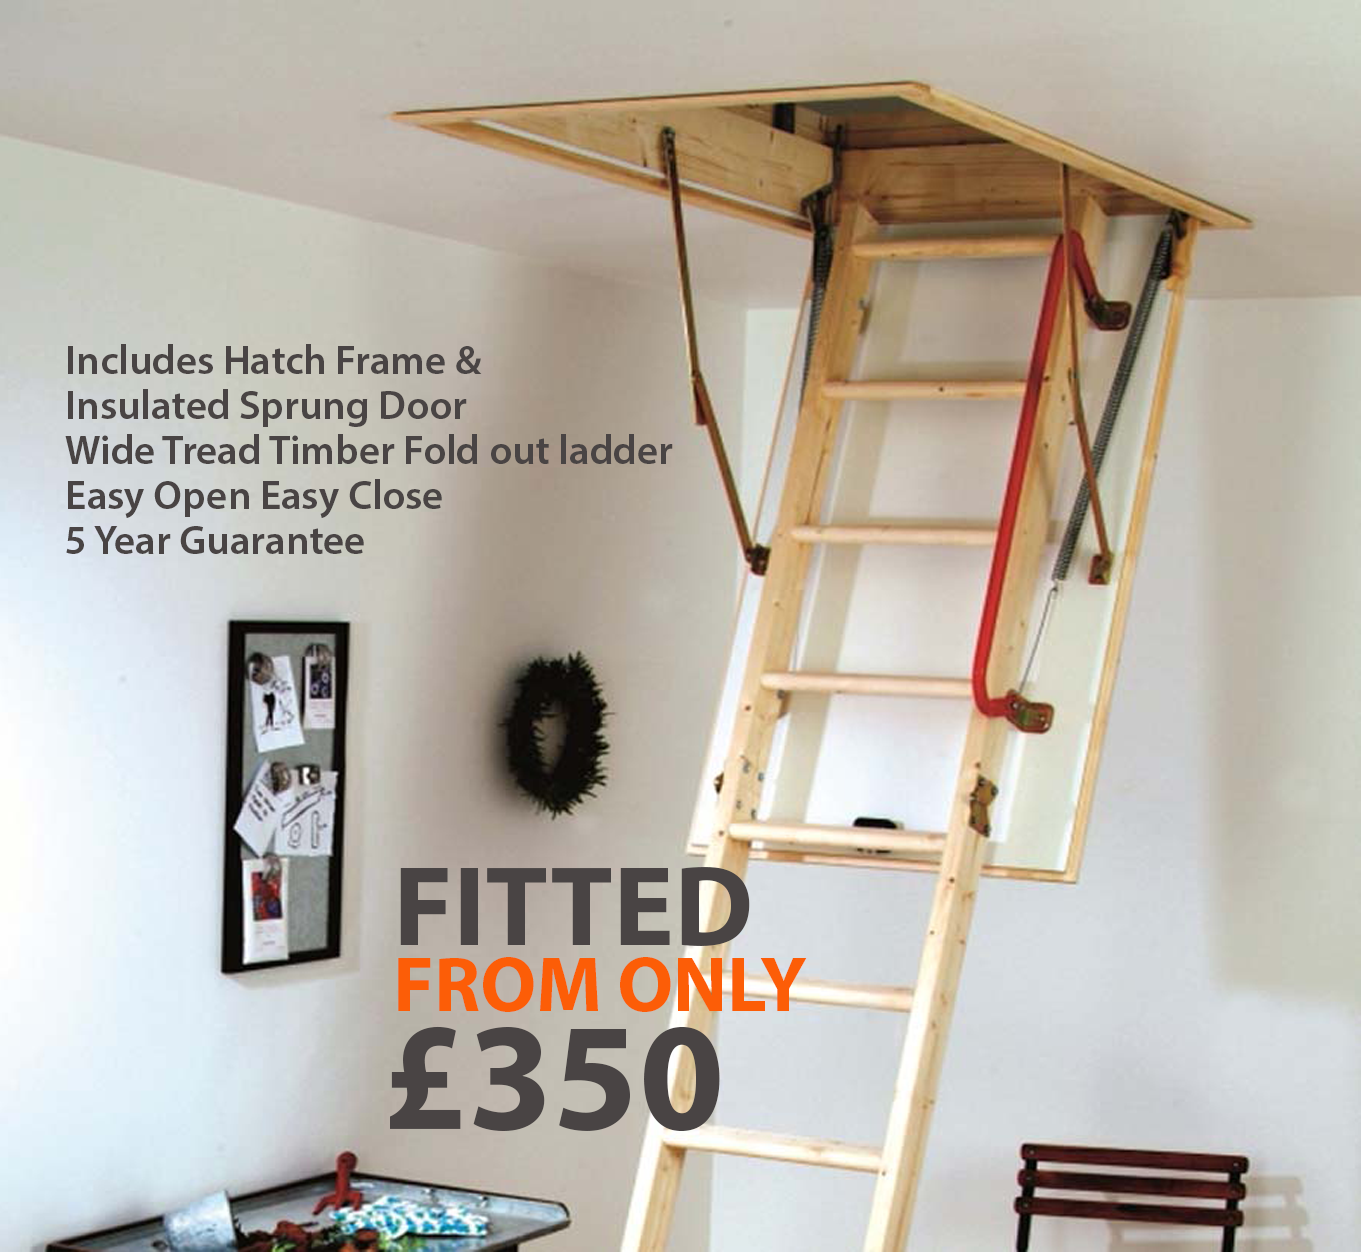 Quality Timber Loft Ladder & Hatch